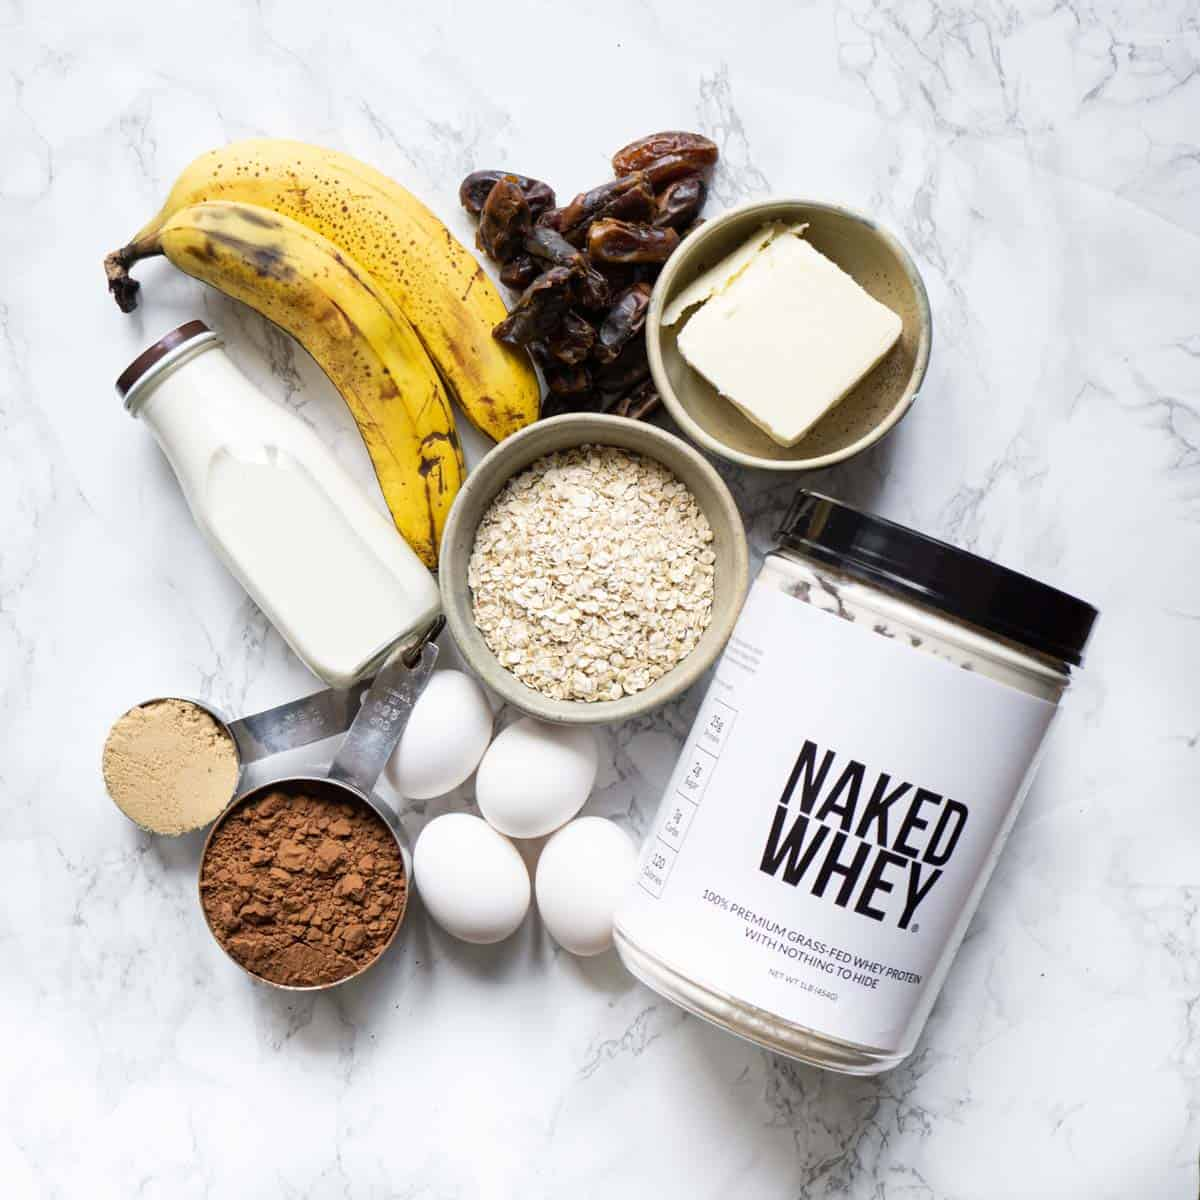 ingredients needed to make protein brownies, including naked whey protein powder, cocoa, eggs, oats, butter, dates, bananas, milk, and brown sugar